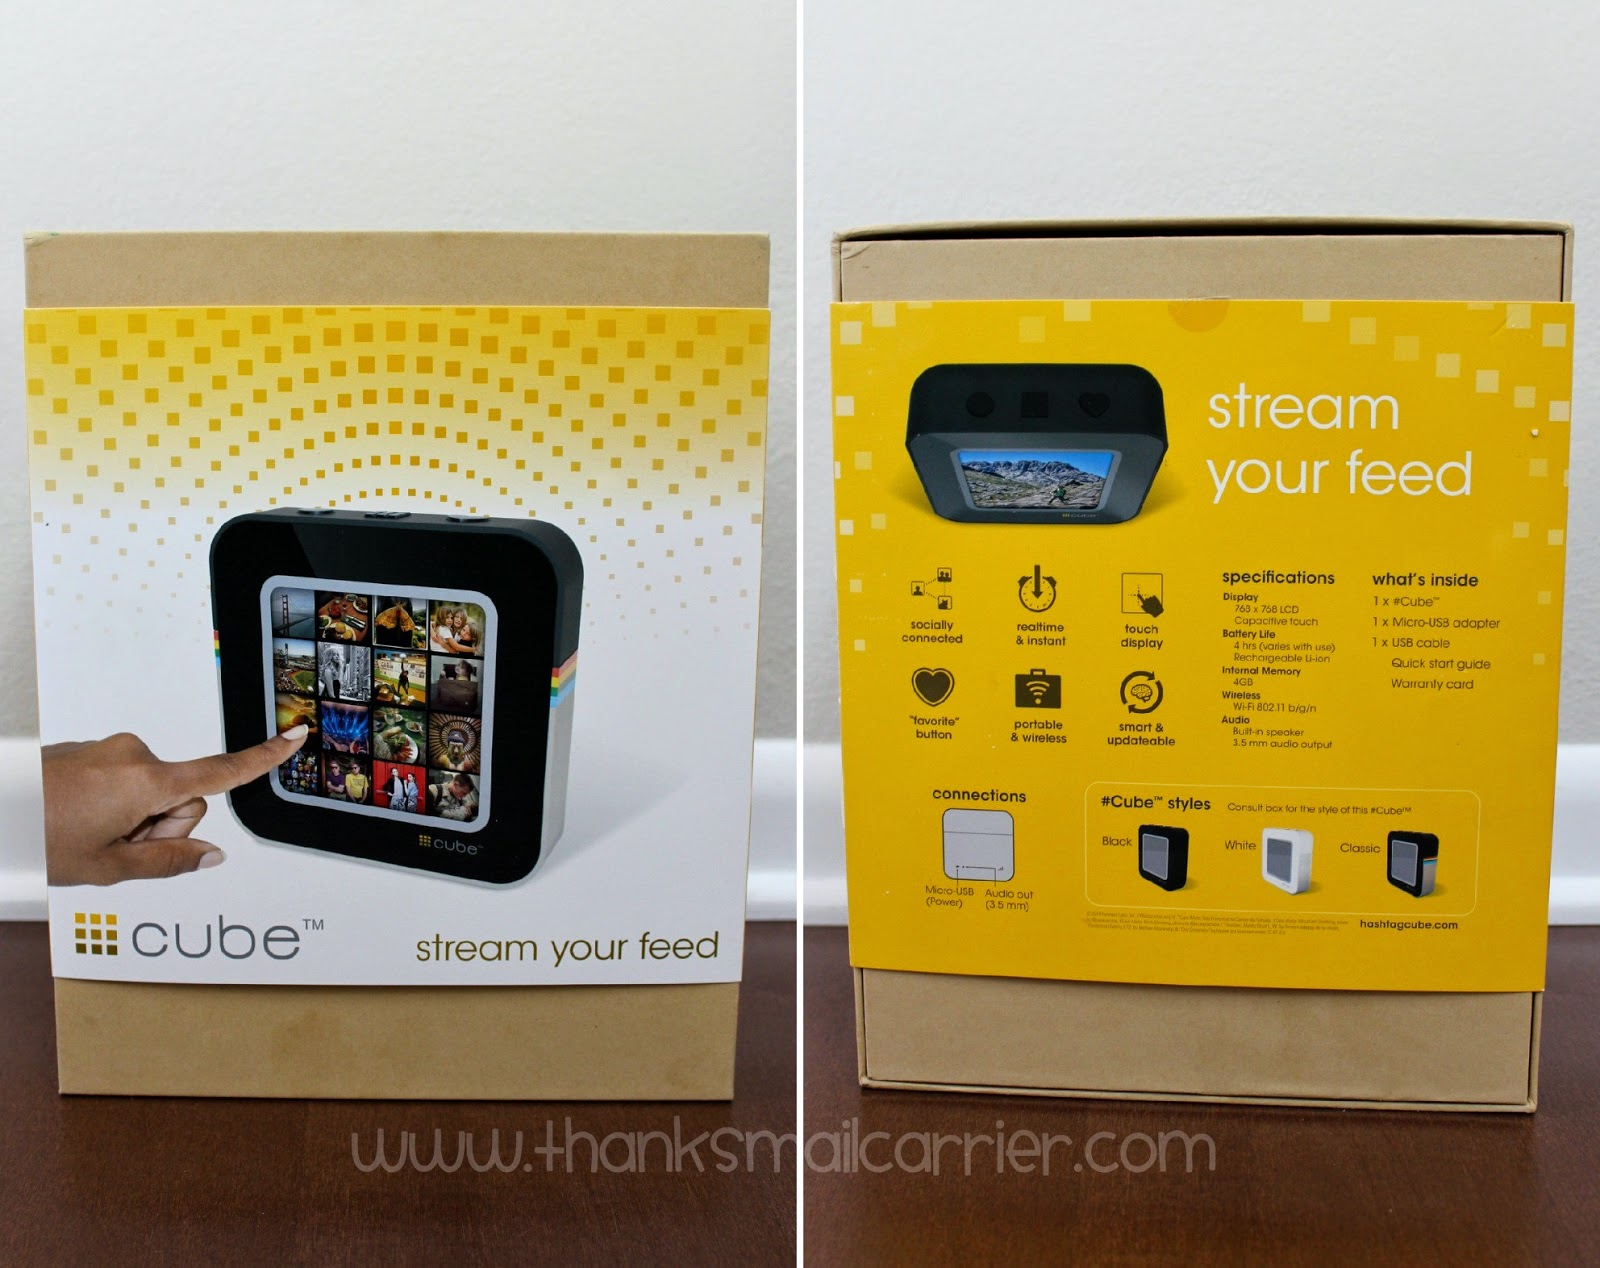 Thanks, Mail Carrier | #Cube, the Digital Wi-fi Touchscreen Photo